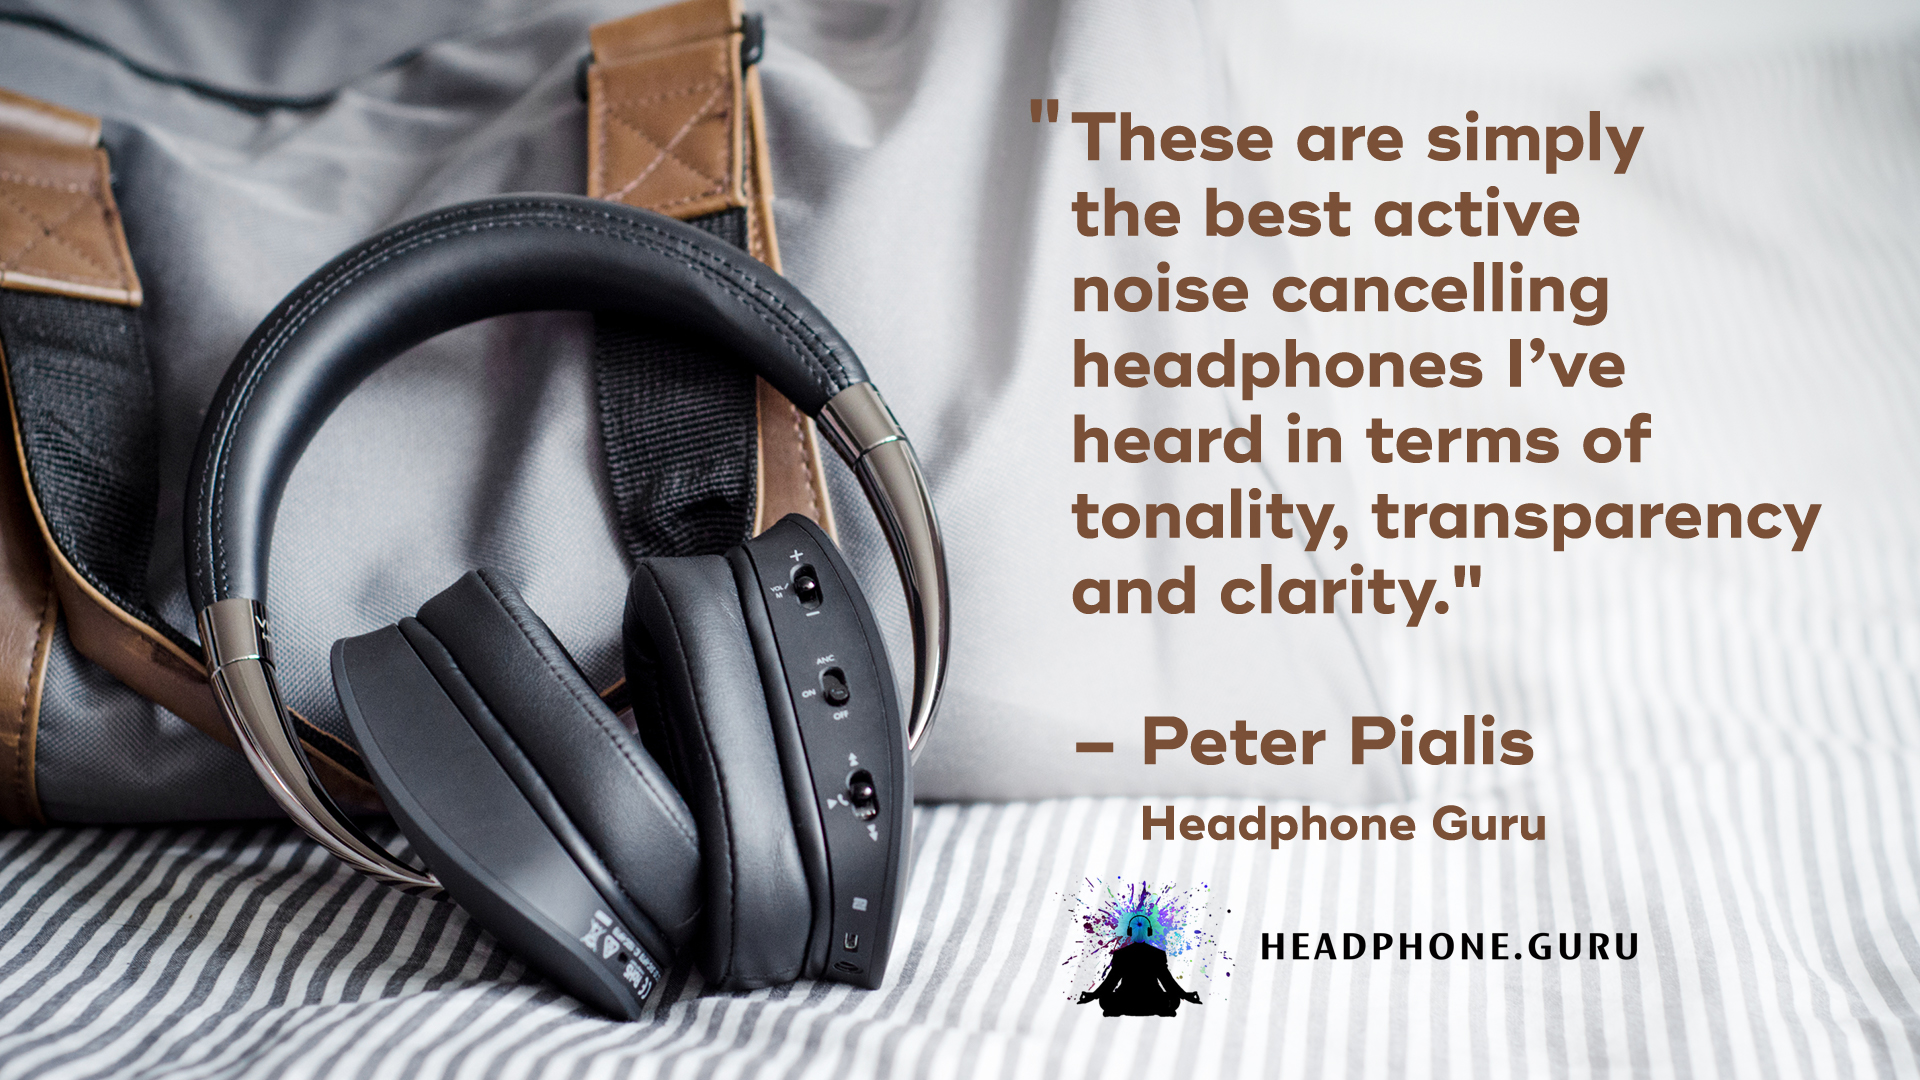 NAD HP70 Lifestyle Headphone Guru Review